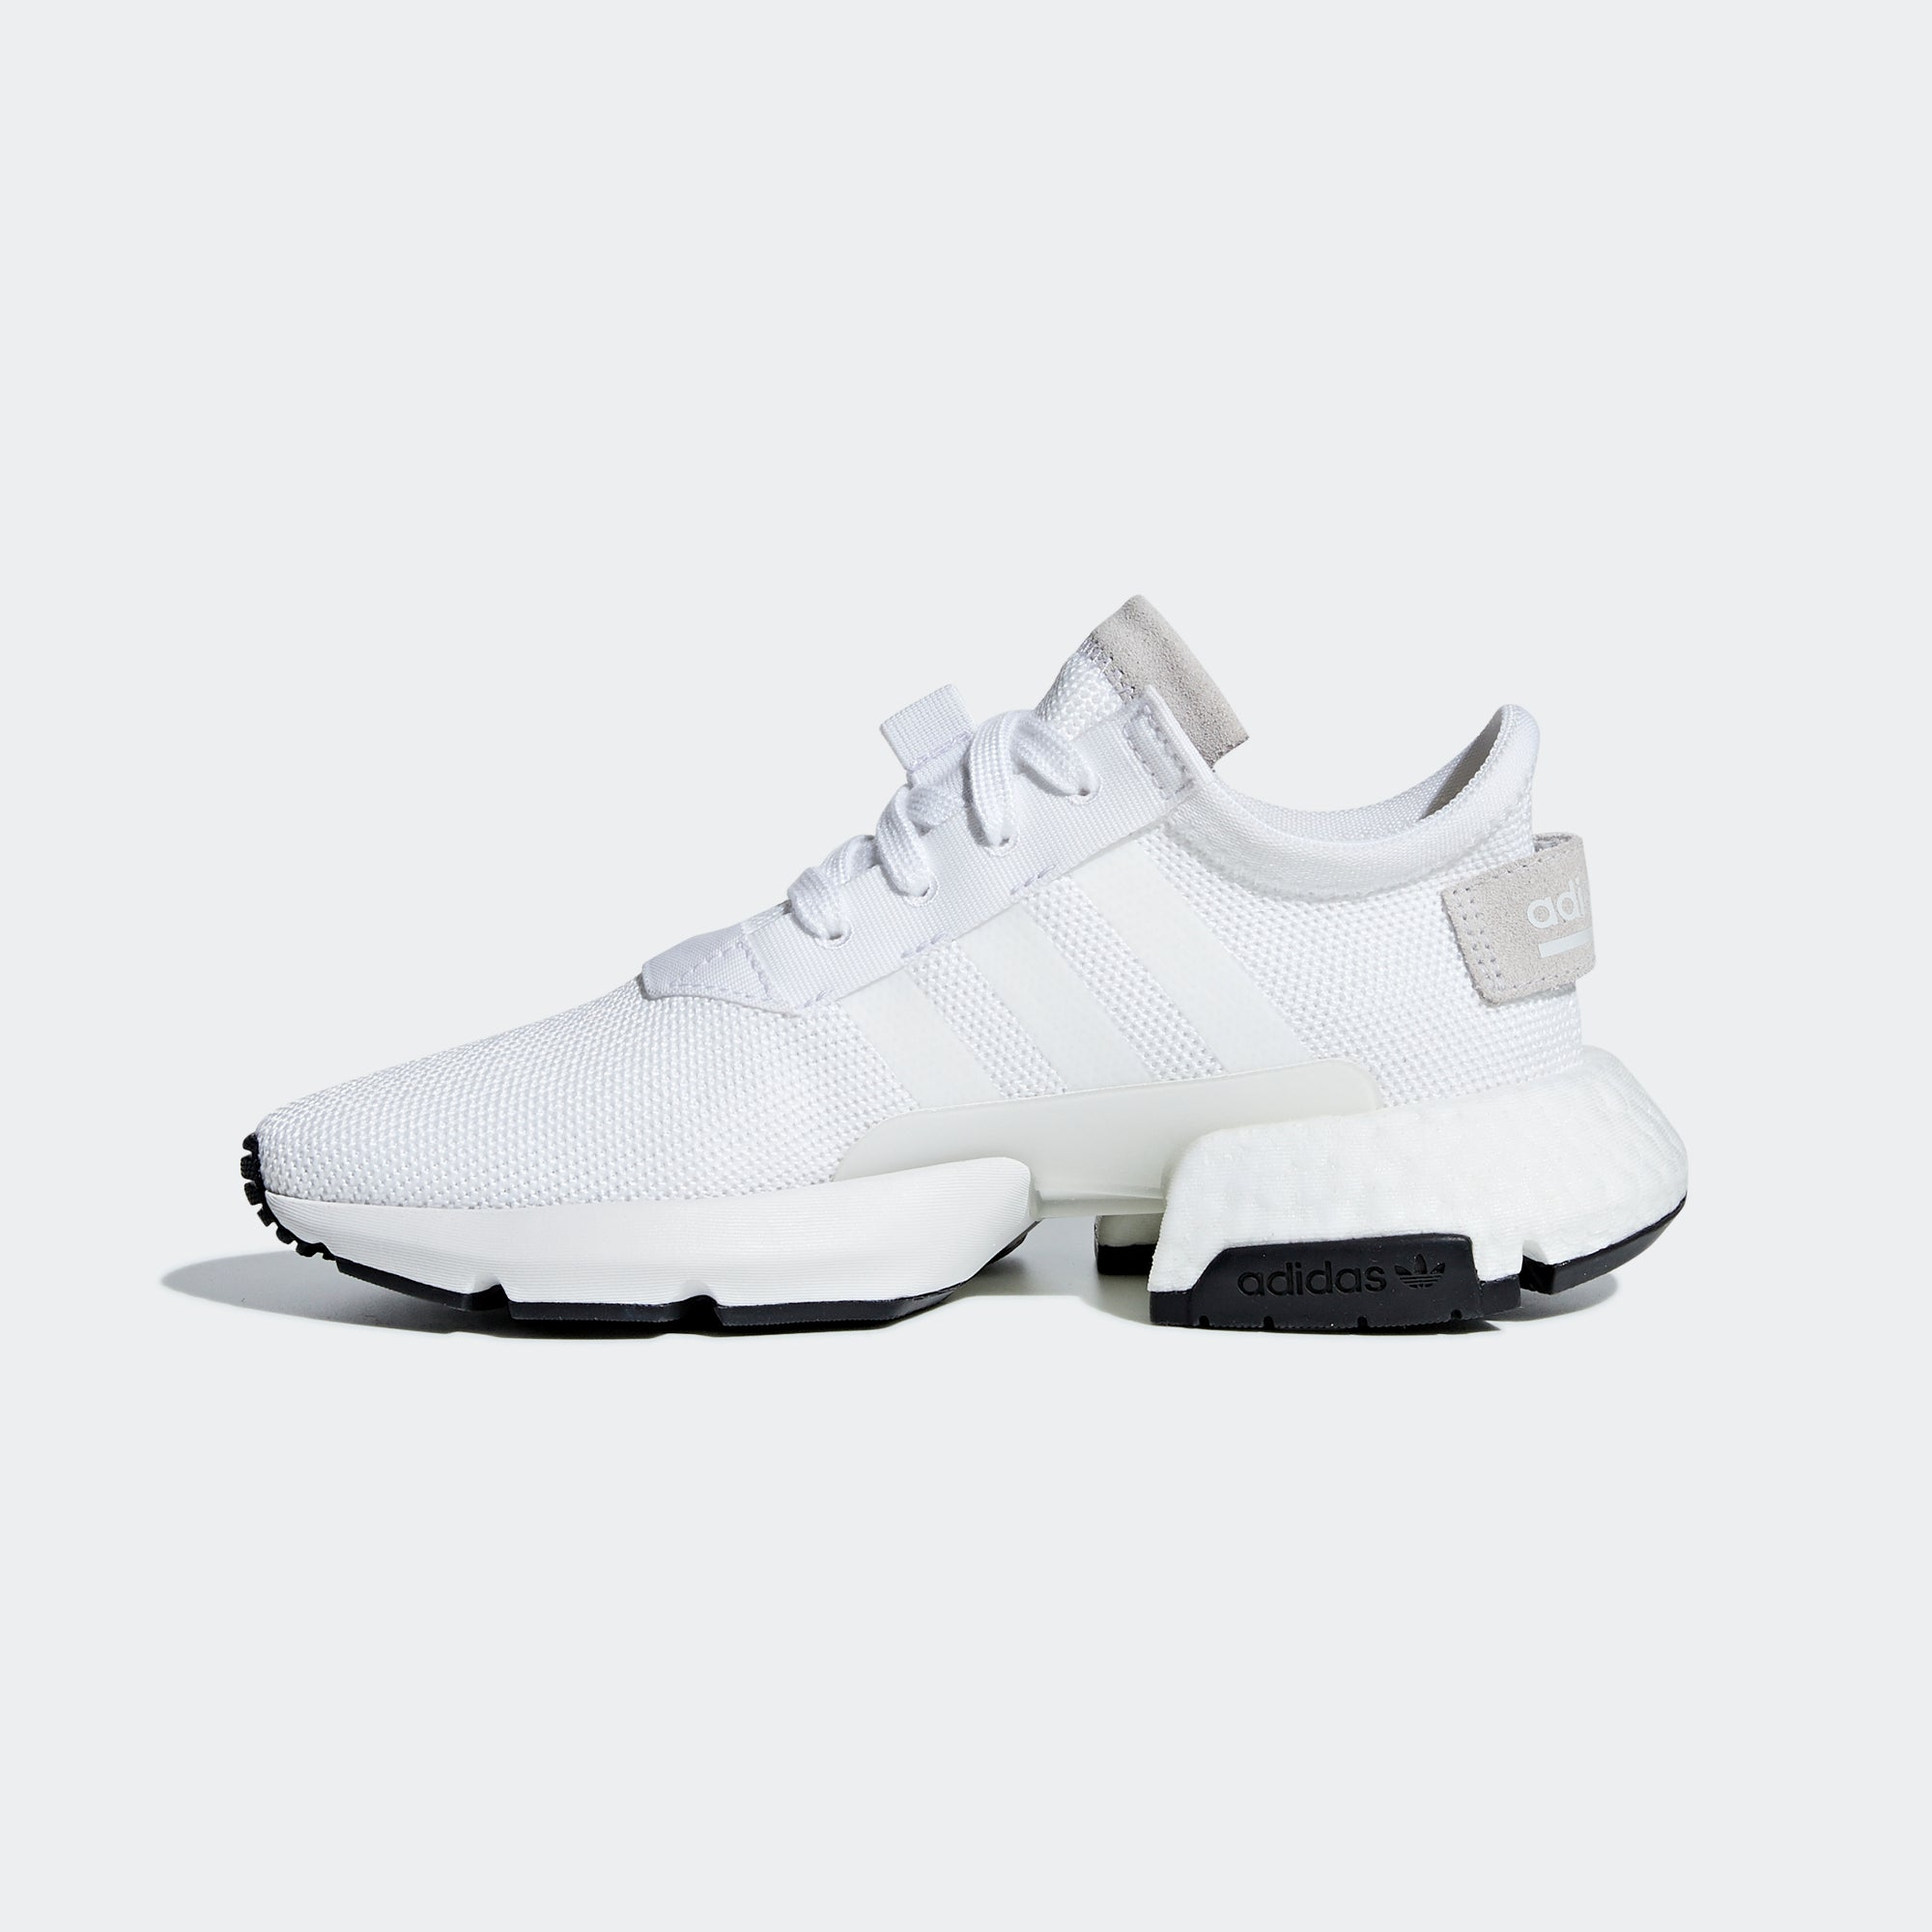 differently 3904a 4a020 Kids adidas Originals POD-S3.1 Shoes Cloud White. 1